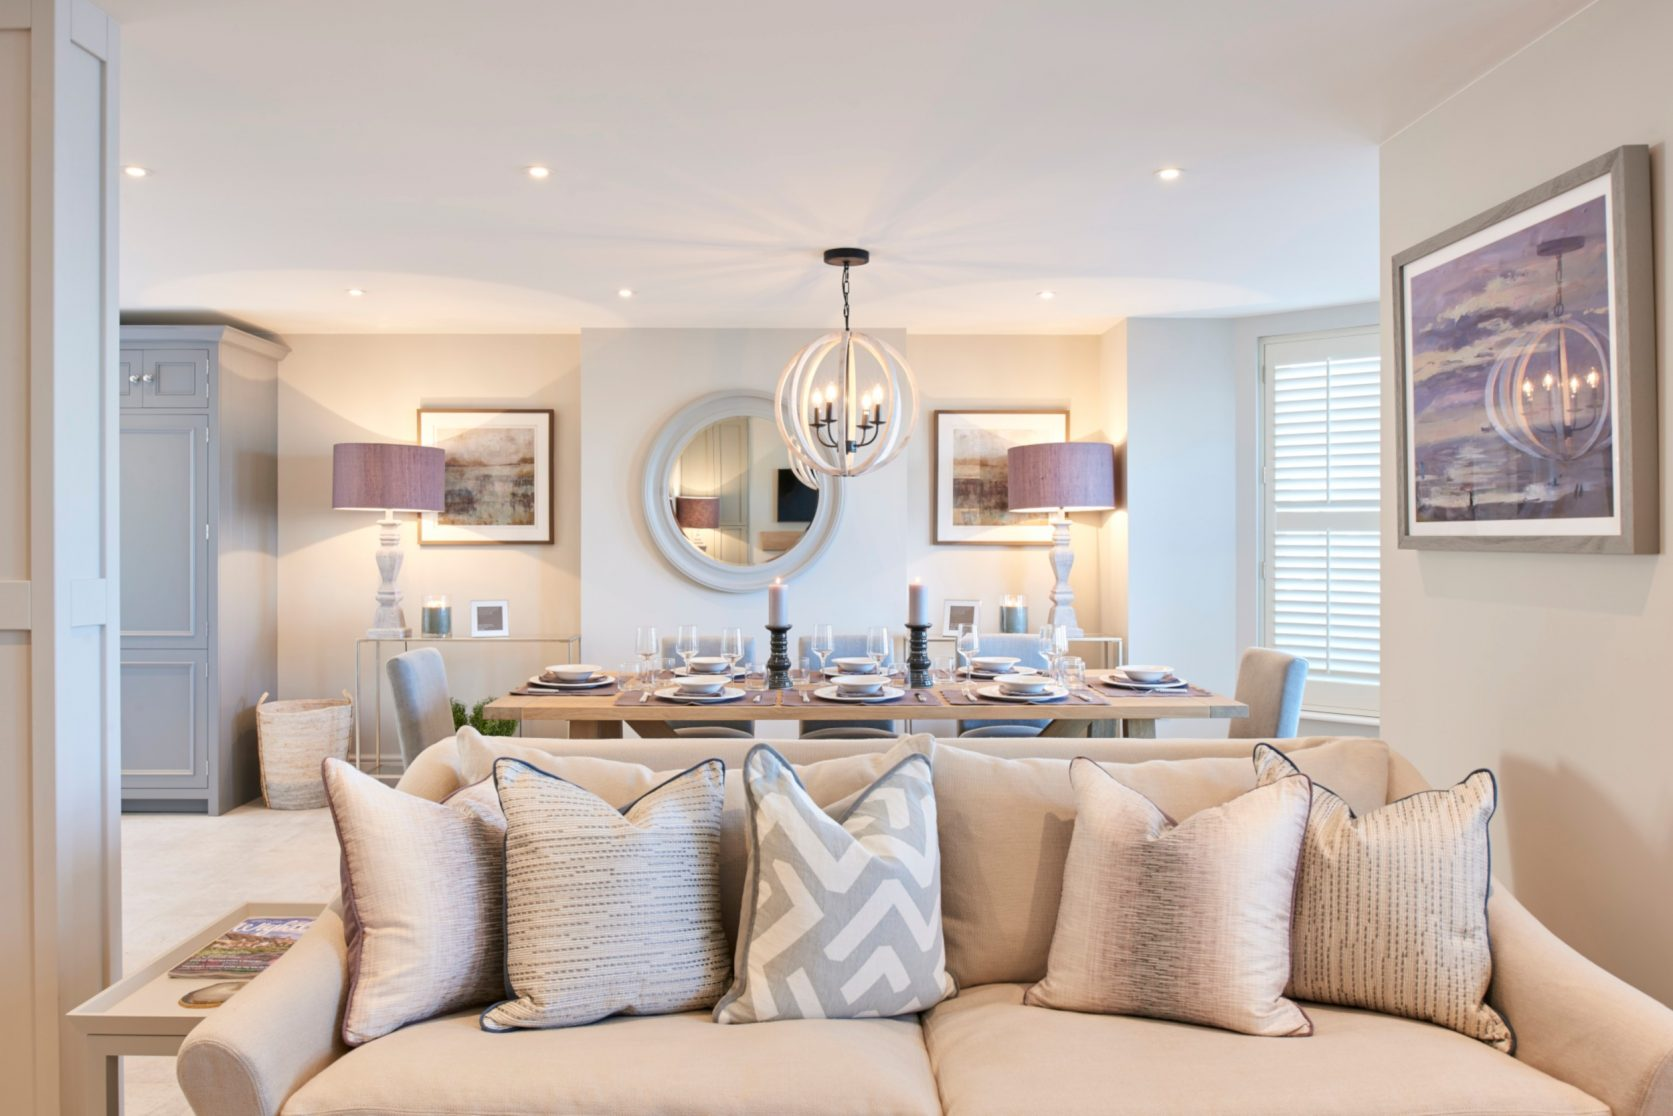 Seaside Colours For Lounge Dining Room Interior Design Claire Garner Interiors